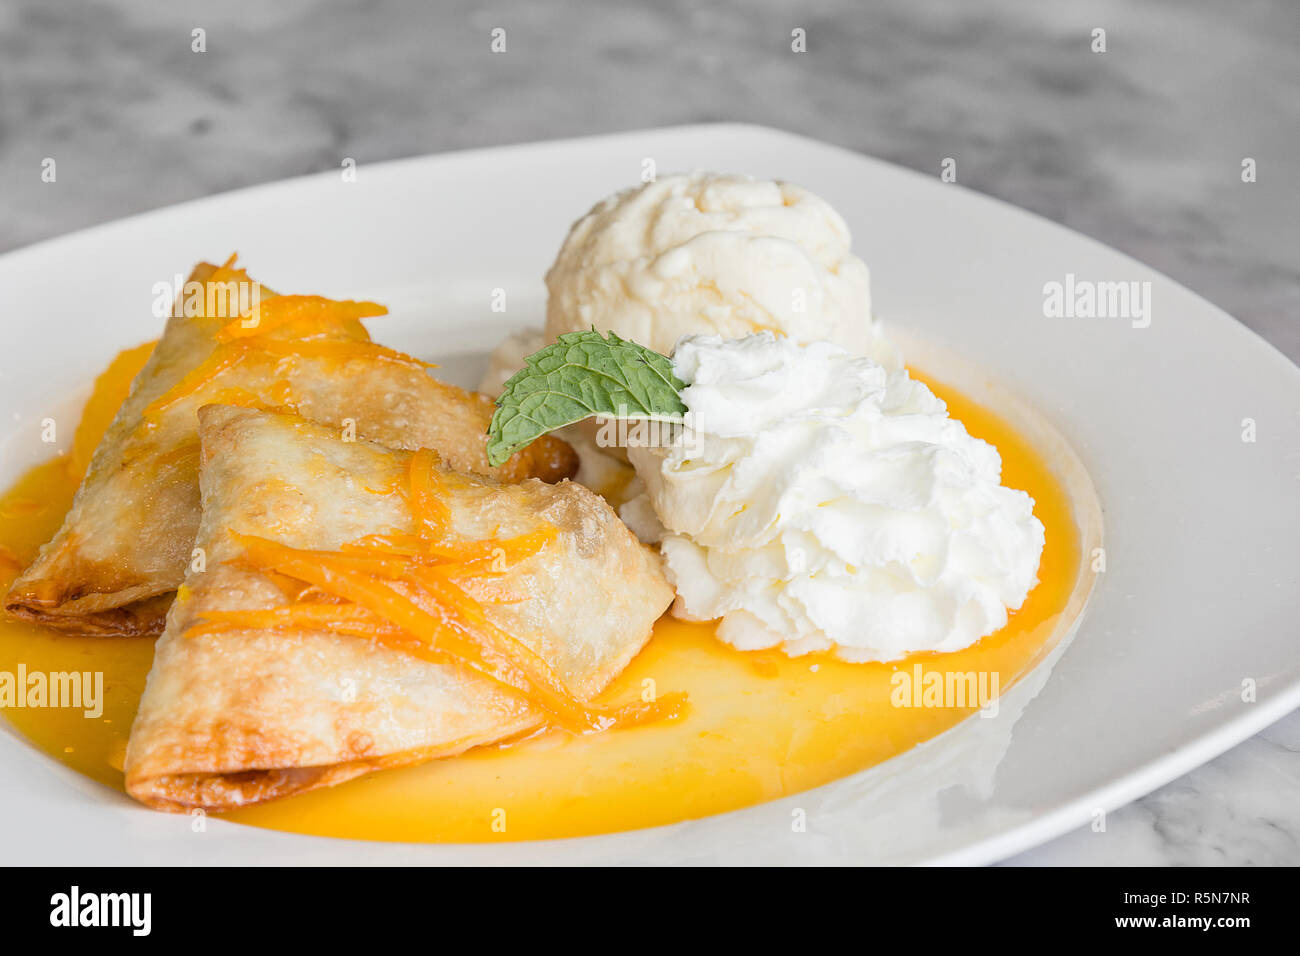 Crepes Suzette French Thin Pancake With Orange Sauce And Ice Cream Stock Photo Alamy